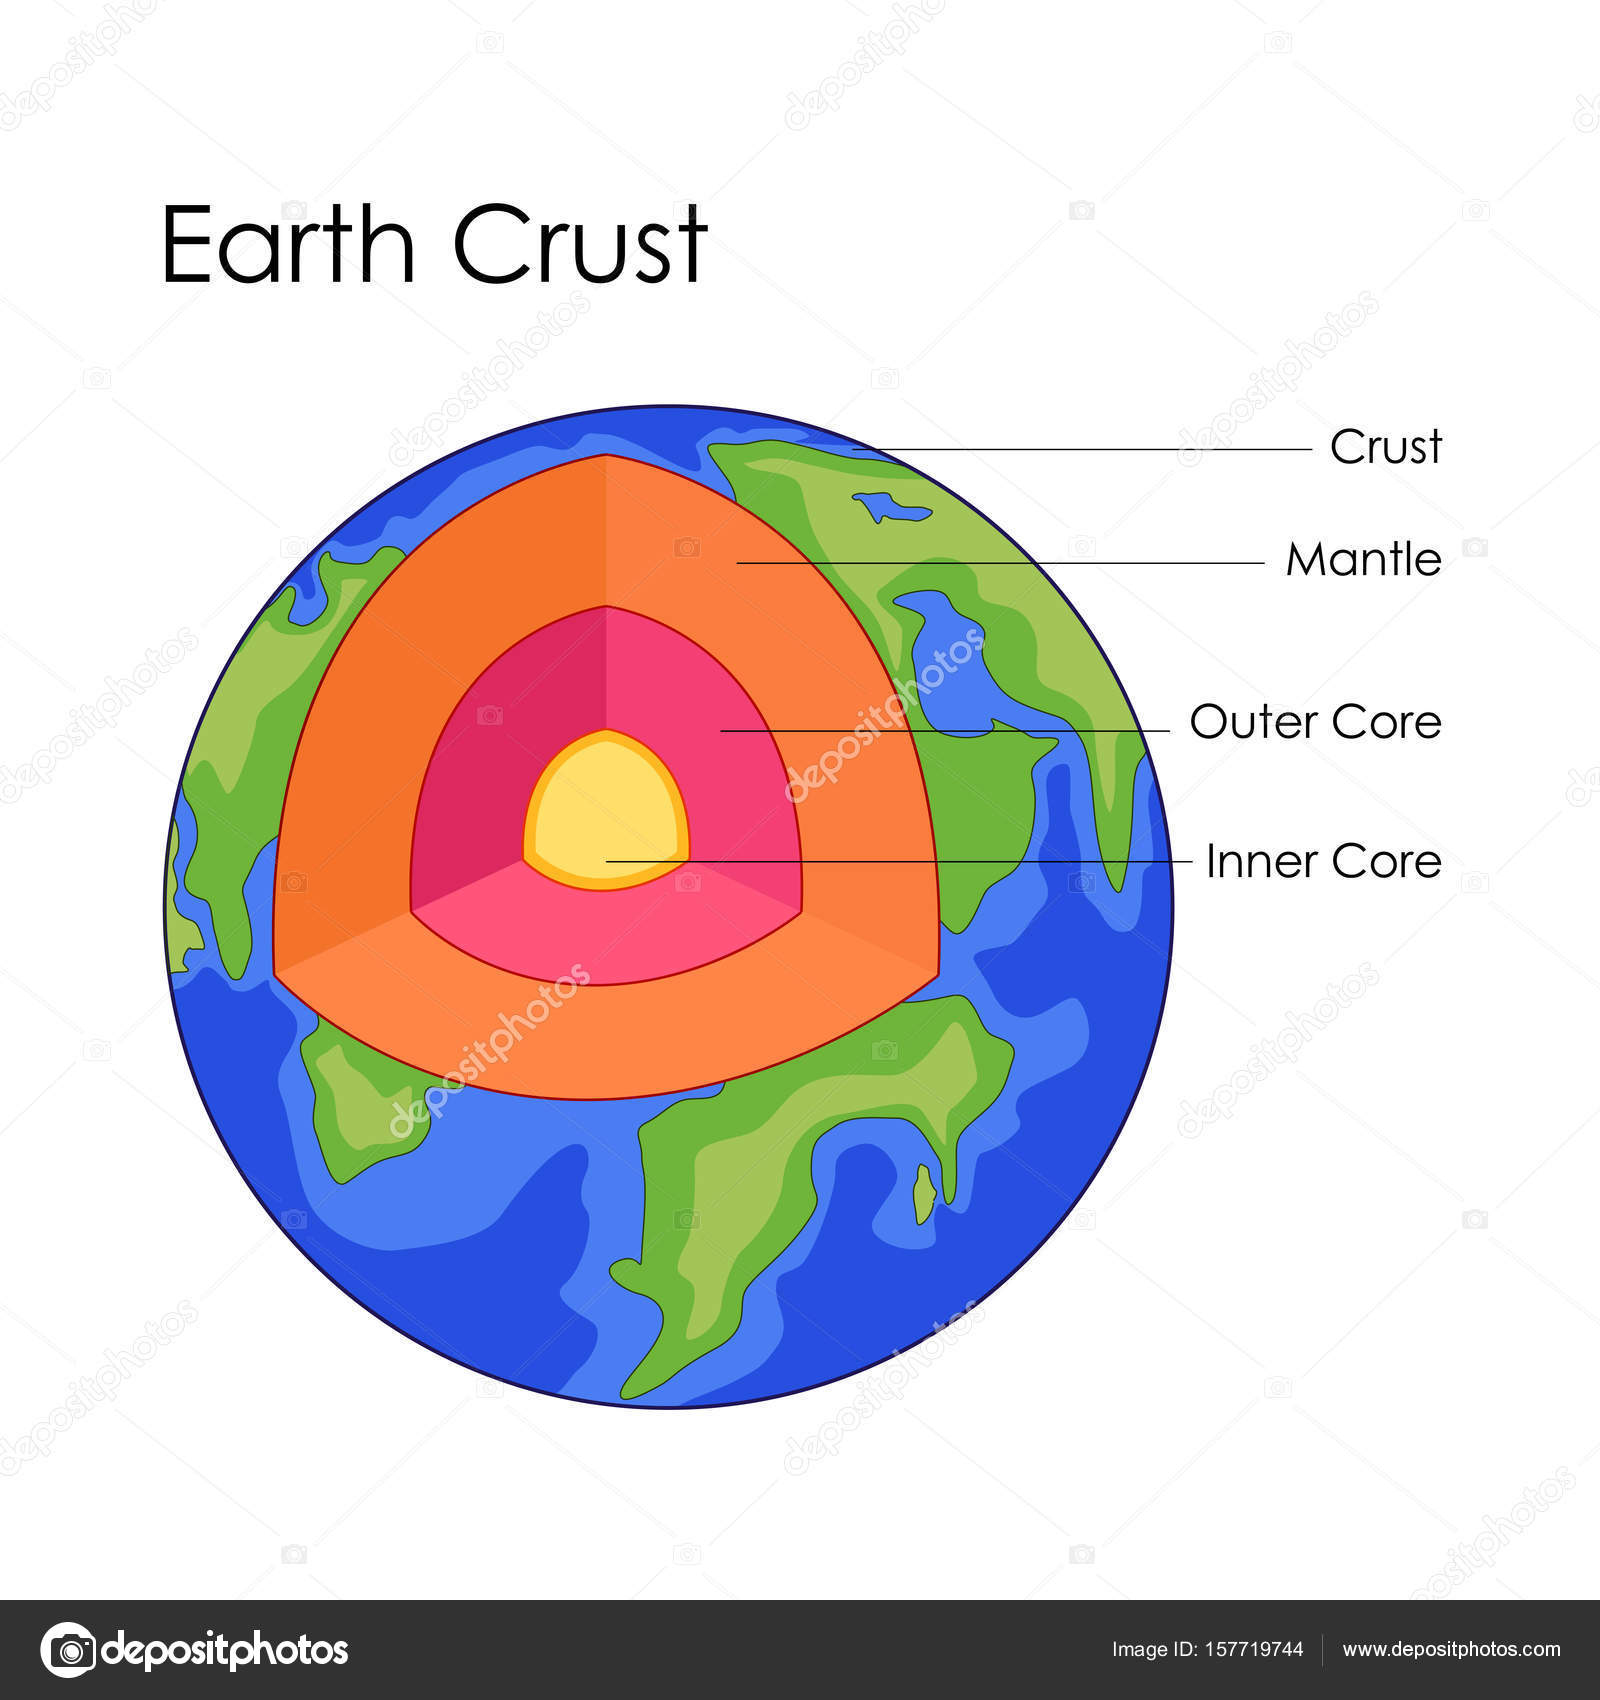 Education chart of earth crust structure diagram stock vector education chart of earth crust structure diagram stock vector ccuart Gallery